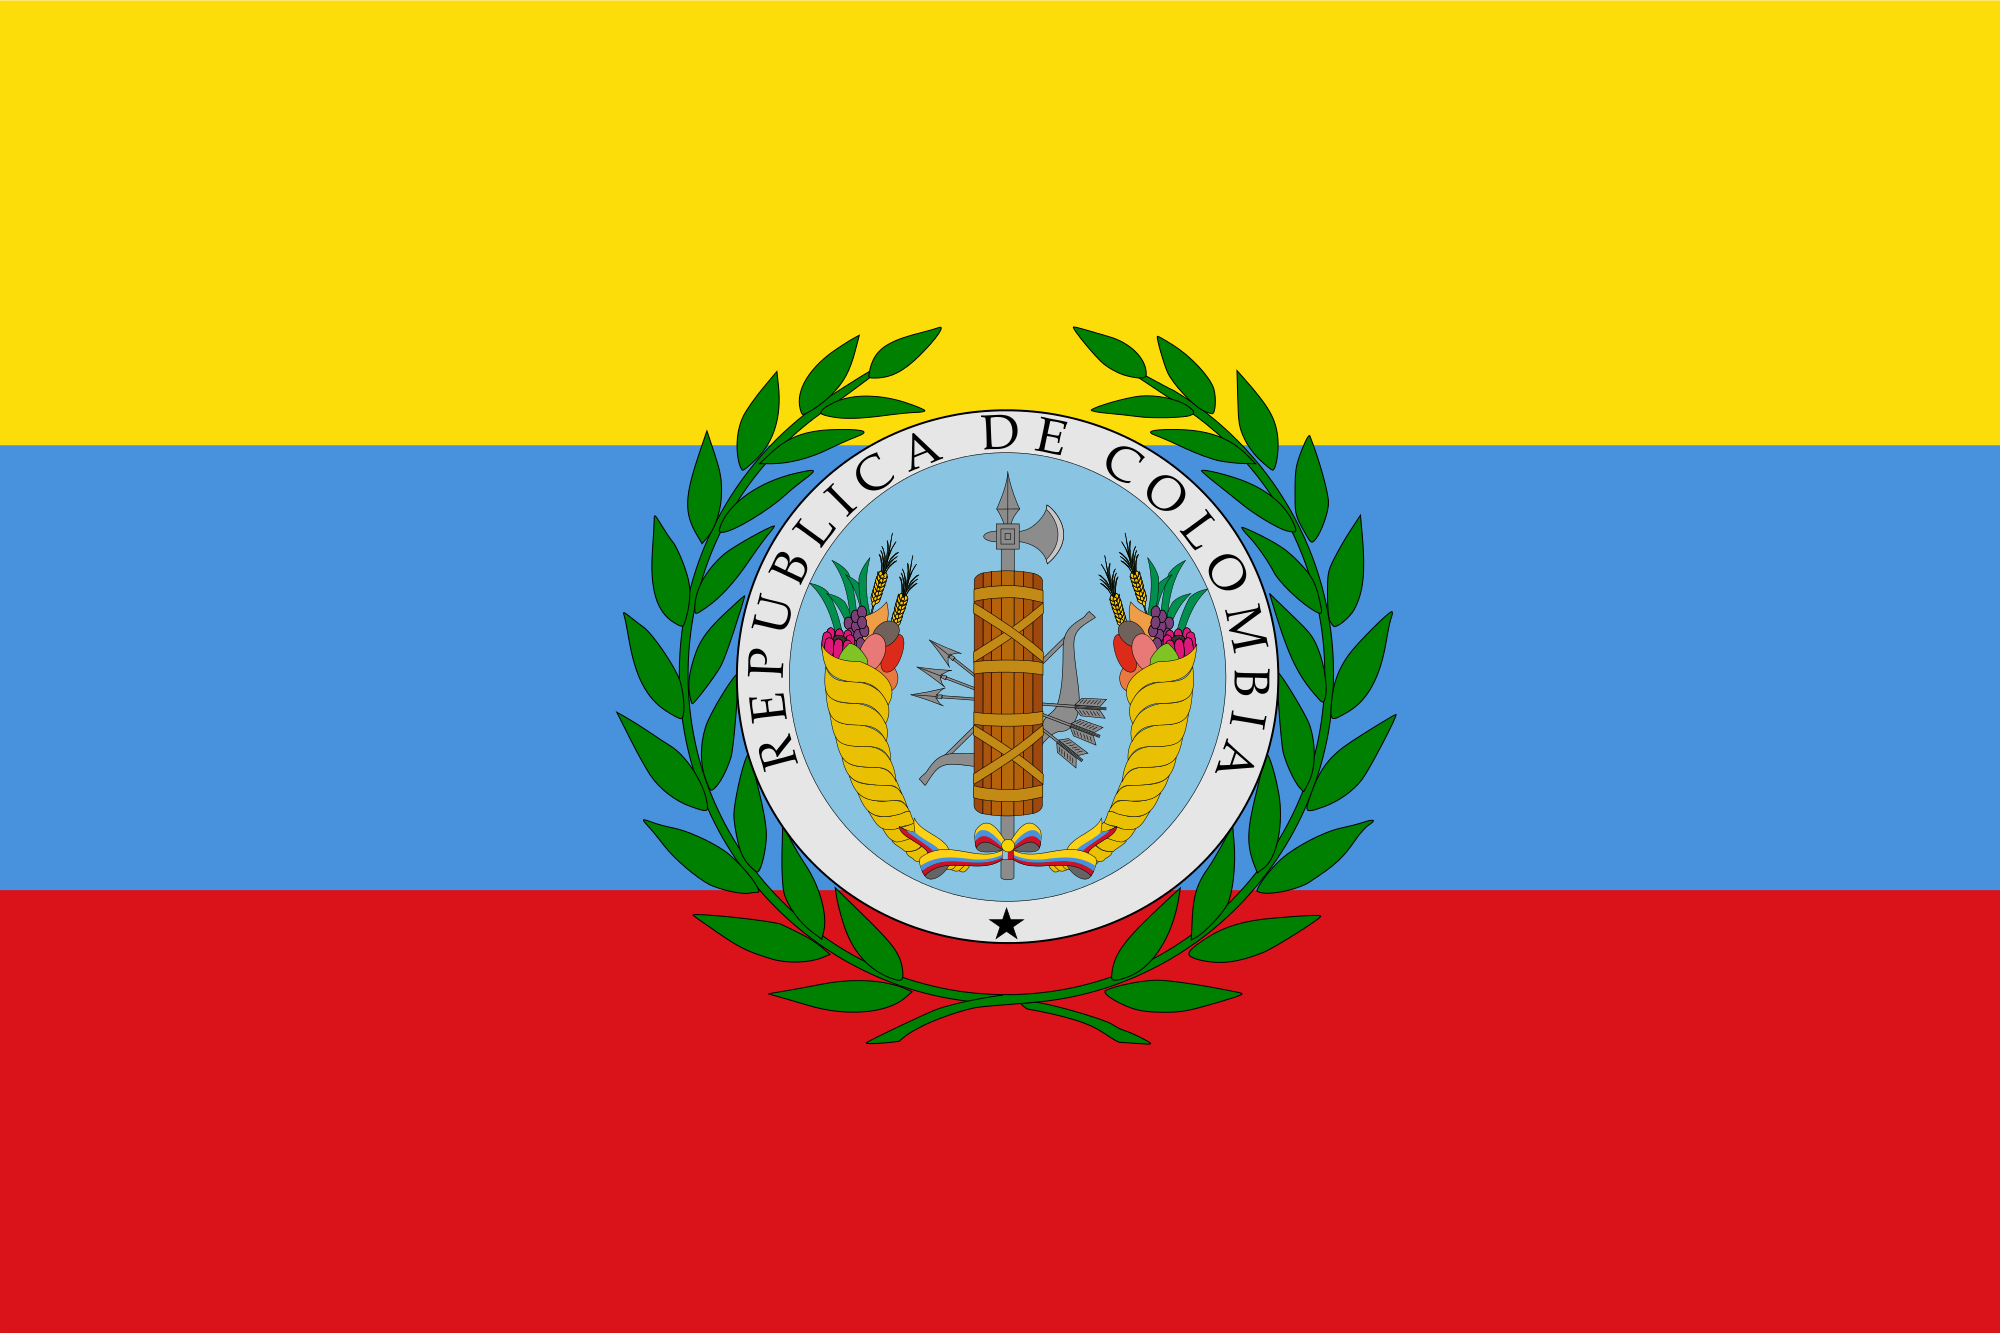 Gran Colombia Flags Pinterest Gran Colombia Colombian Flag